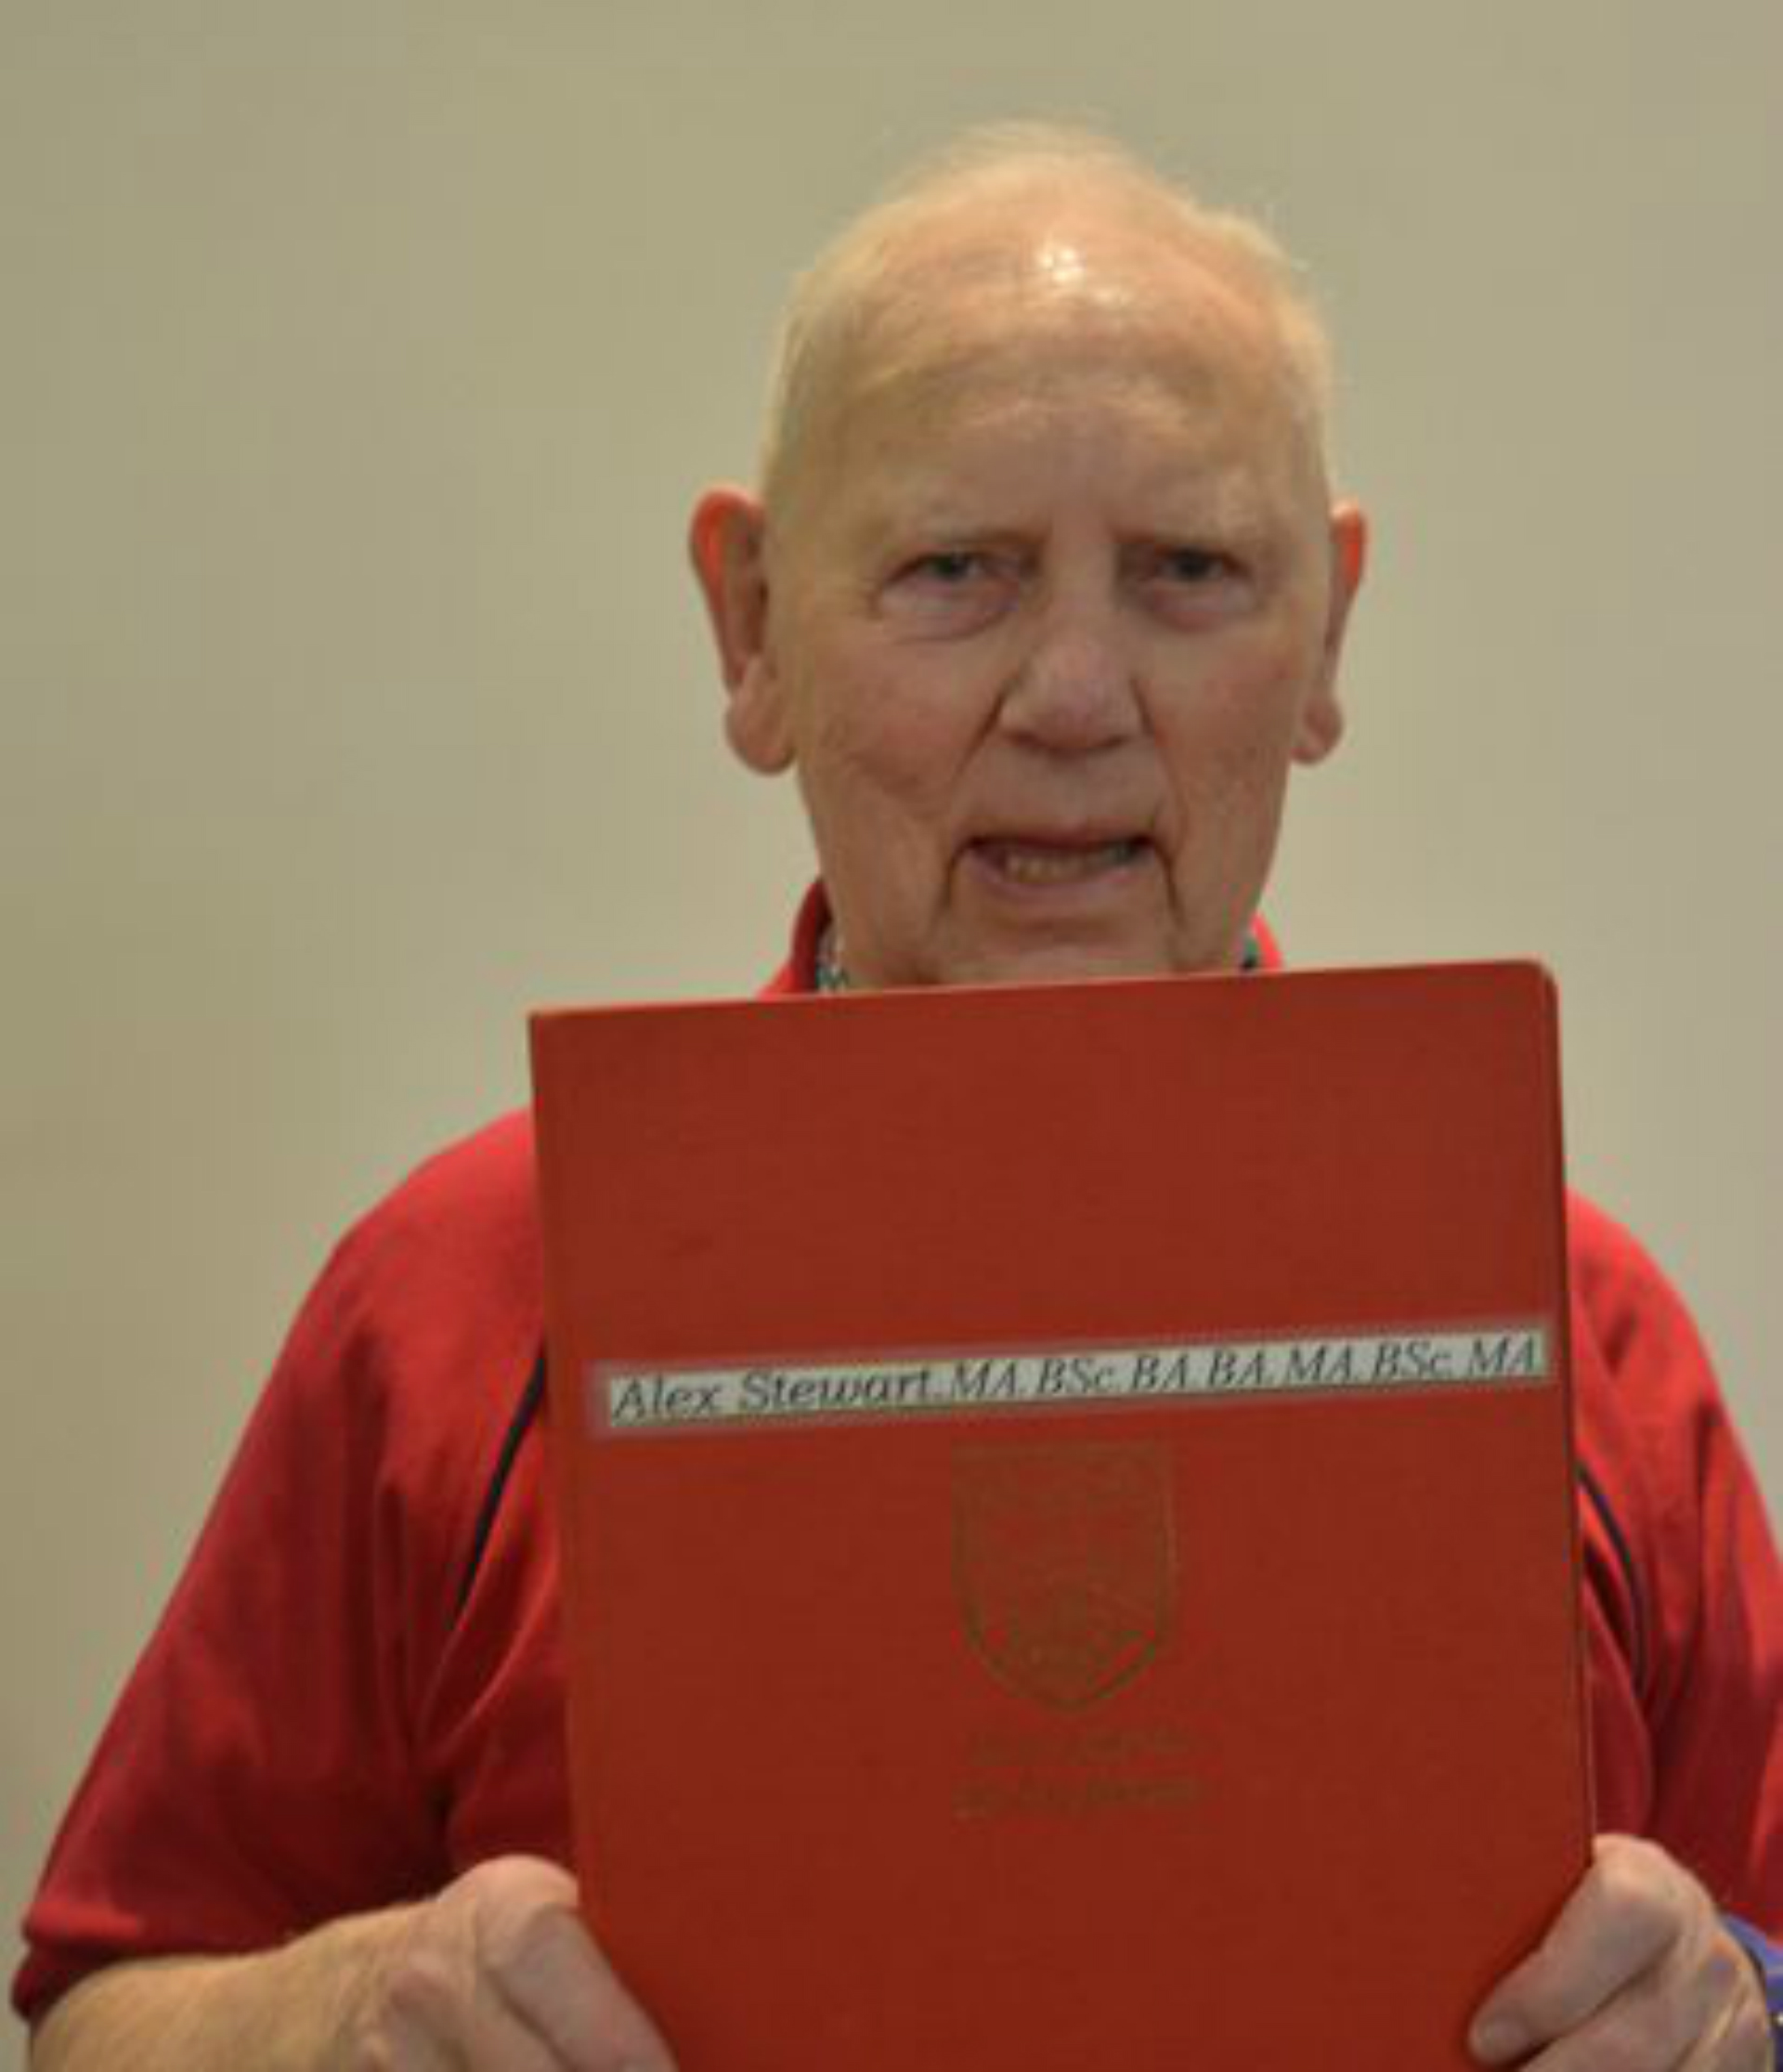 Scotland's oldest graduate bids to return to Abertay